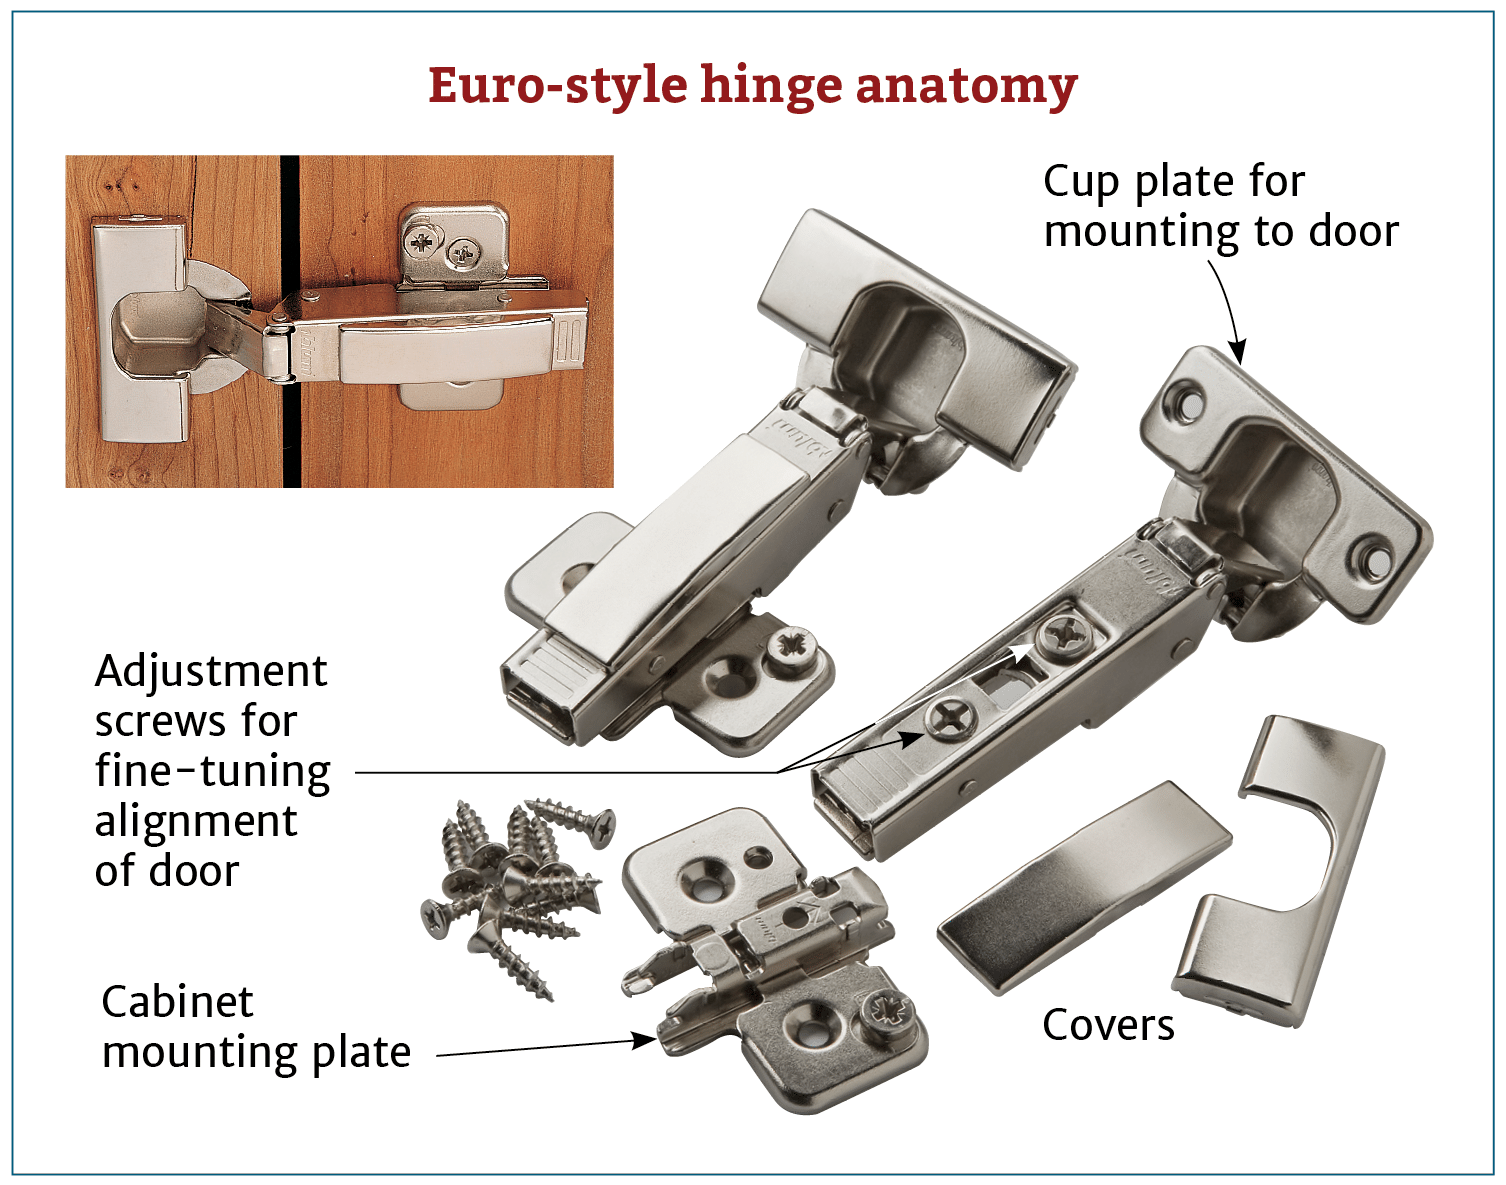 Choosing The Right Cabinet Hinge For Your Project Hinges For Cabinets Hinges Kitchen Cabinets Hinges